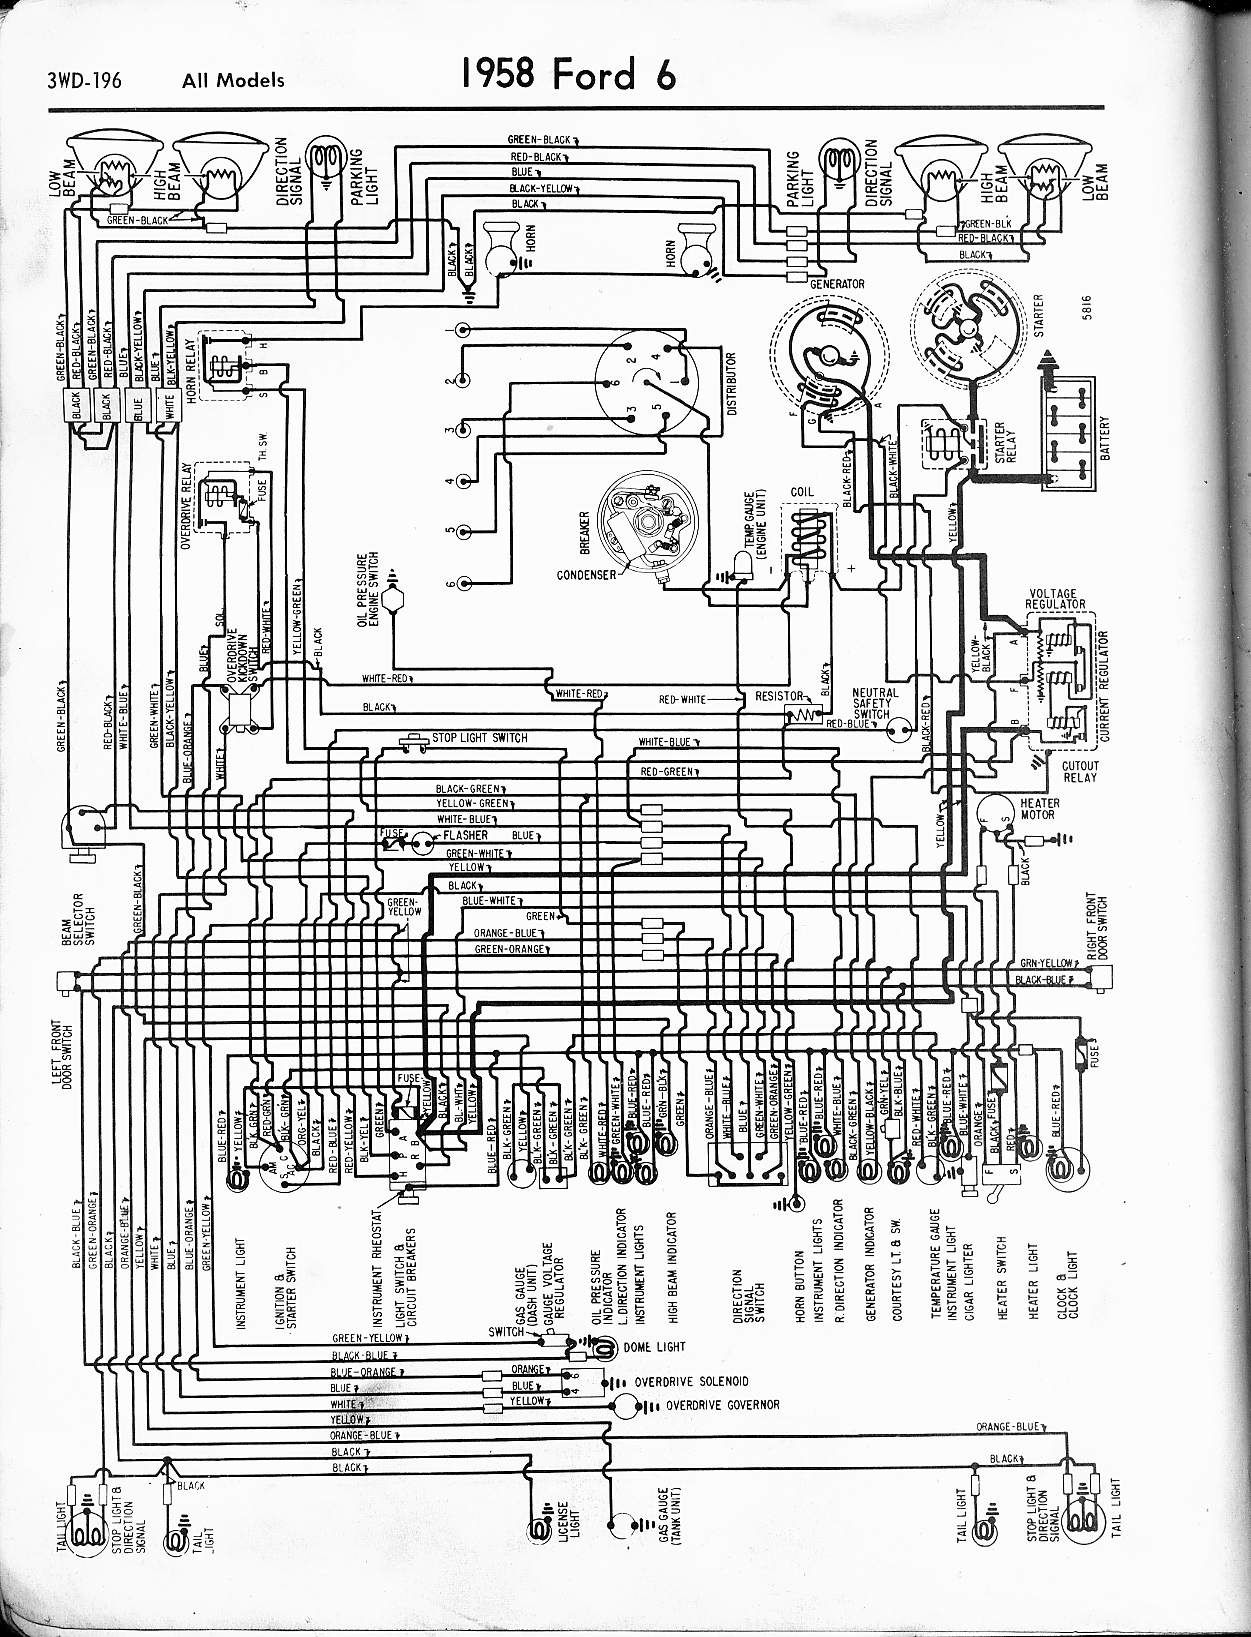 1958 Ford 6 wiring schematic | my | Ford, Ford thunderbird и Ford  Ford Wiring Diagram on 1954 dodge wiring diagram, 1964 mustang wiring diagram, 1949 cadillac wiring diagram, 1926 ford wiring diagram, 1940 buick wiring diagram, 1967 ford wiring diagram, 1937 ford wiring diagram, 1957 pontiac wiring diagram, 1958 ford continental kit, 1957 plymouth wiring diagram, 1957 dodge wiring diagram, 59 ford wiring diagram, 1930 ford wiring diagram, 1953 buick wiring diagram, 1950 ford wiring diagram, 1931 ford model a wiring diagram, 1955 dodge wiring diagram, 1955 buick wiring diagram, 1963 ford wiring diagram, 1950 cadillac wiring diagram,